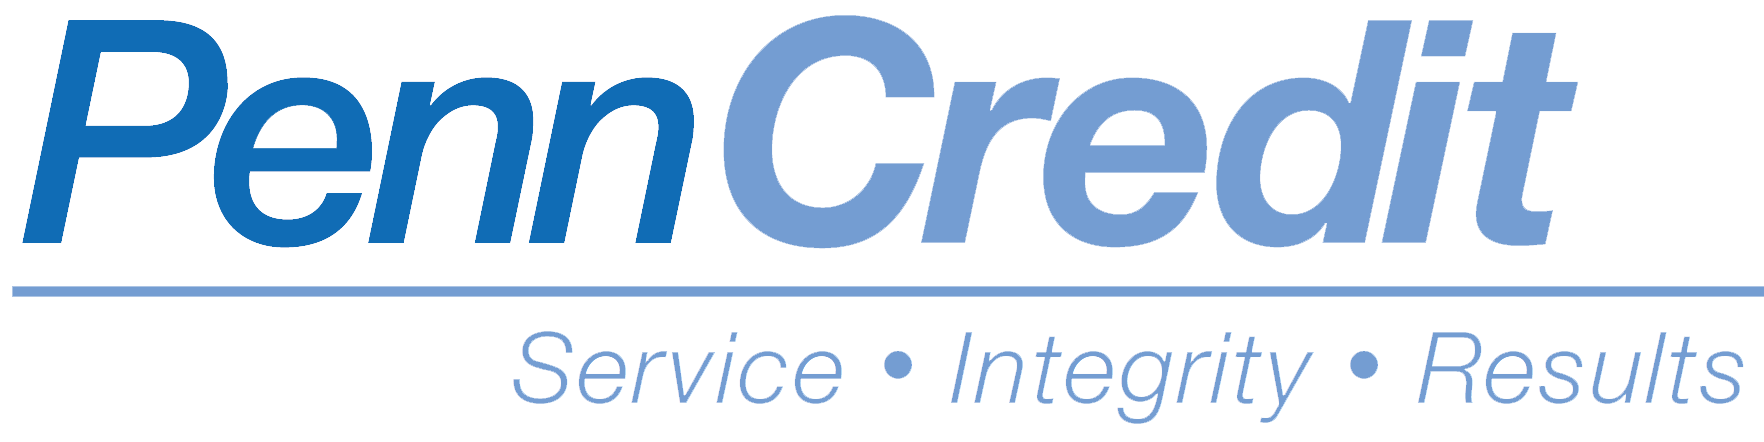 Penn Credit Logo - Full